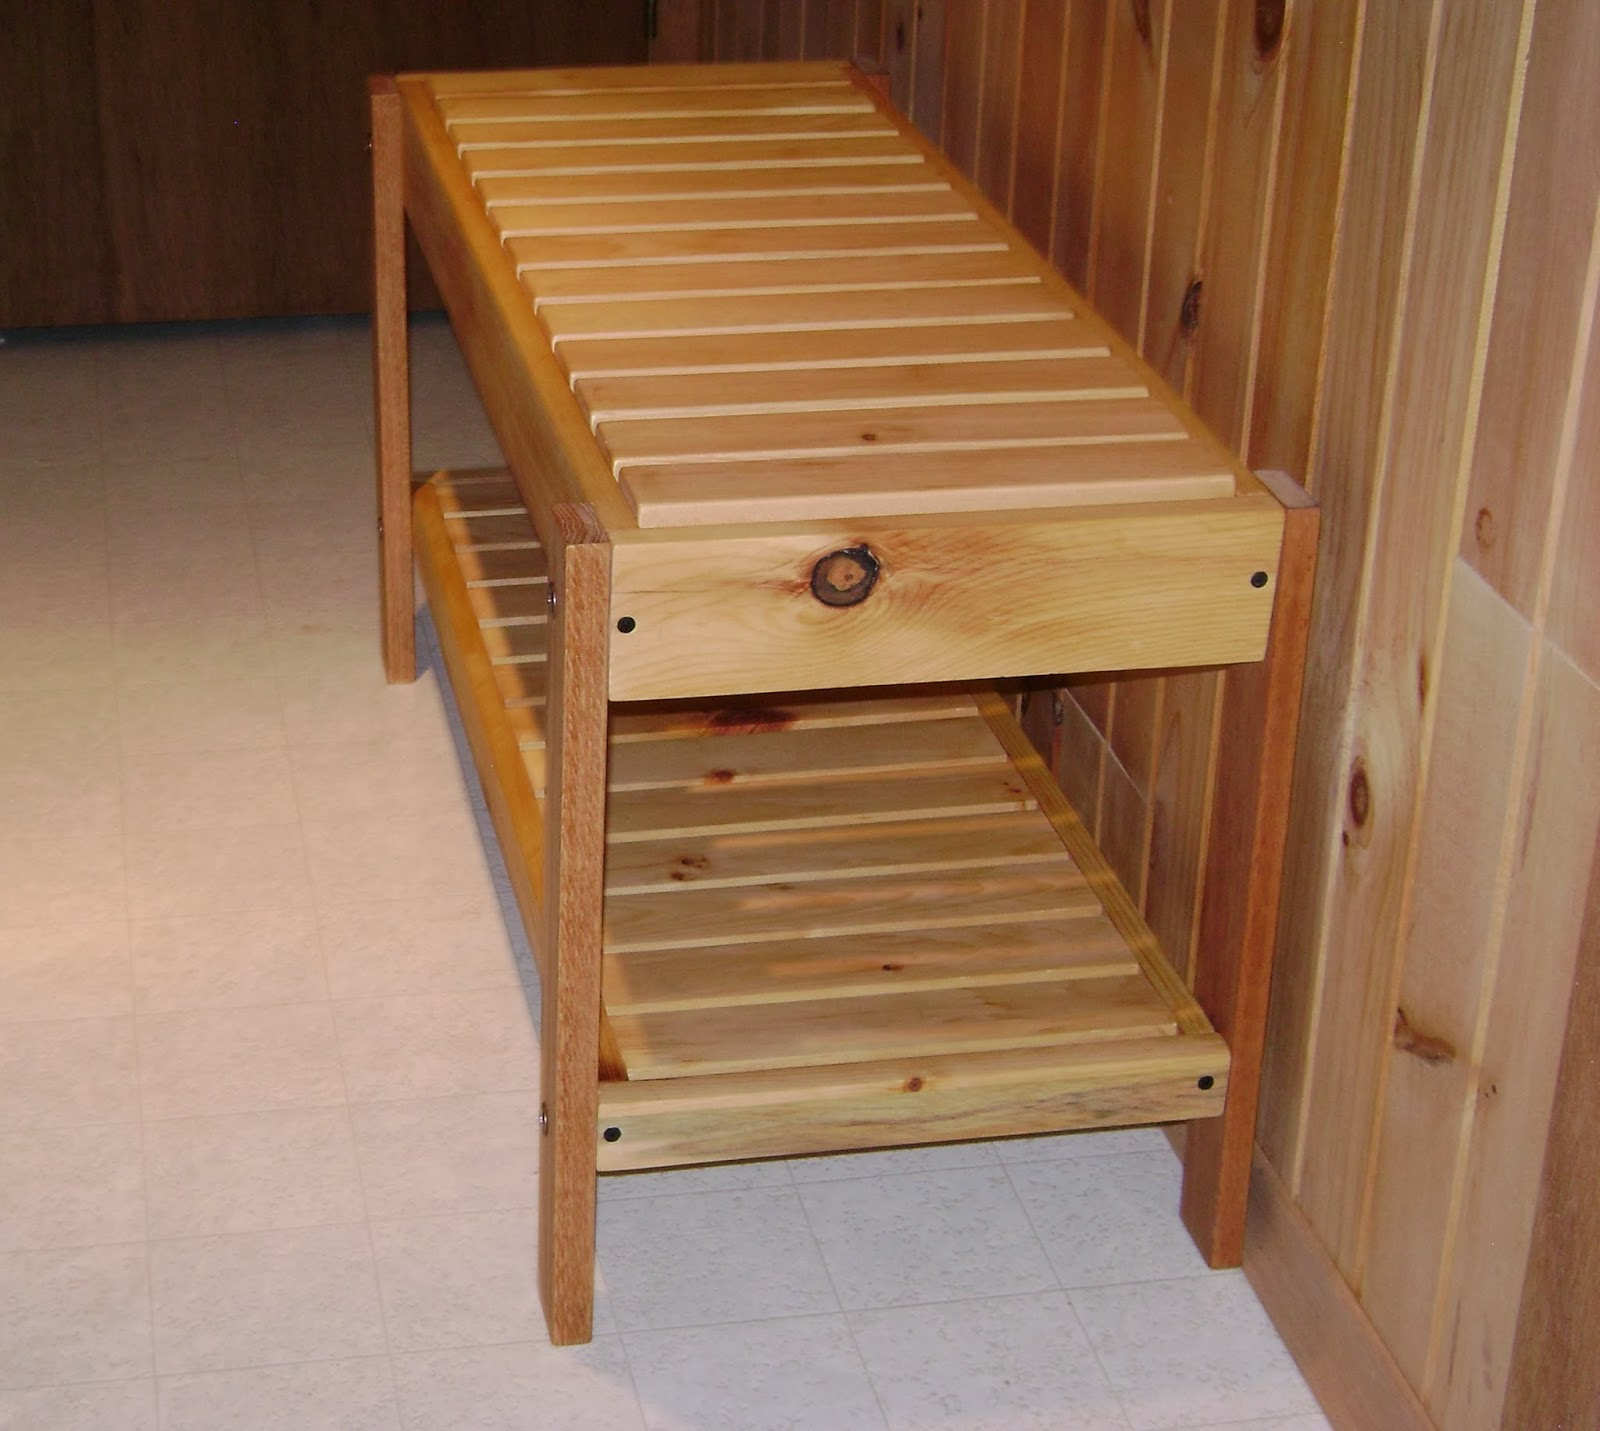 Do It Yourself Garage Workbench Plans: Bed Bench Plans PDF Woodworking